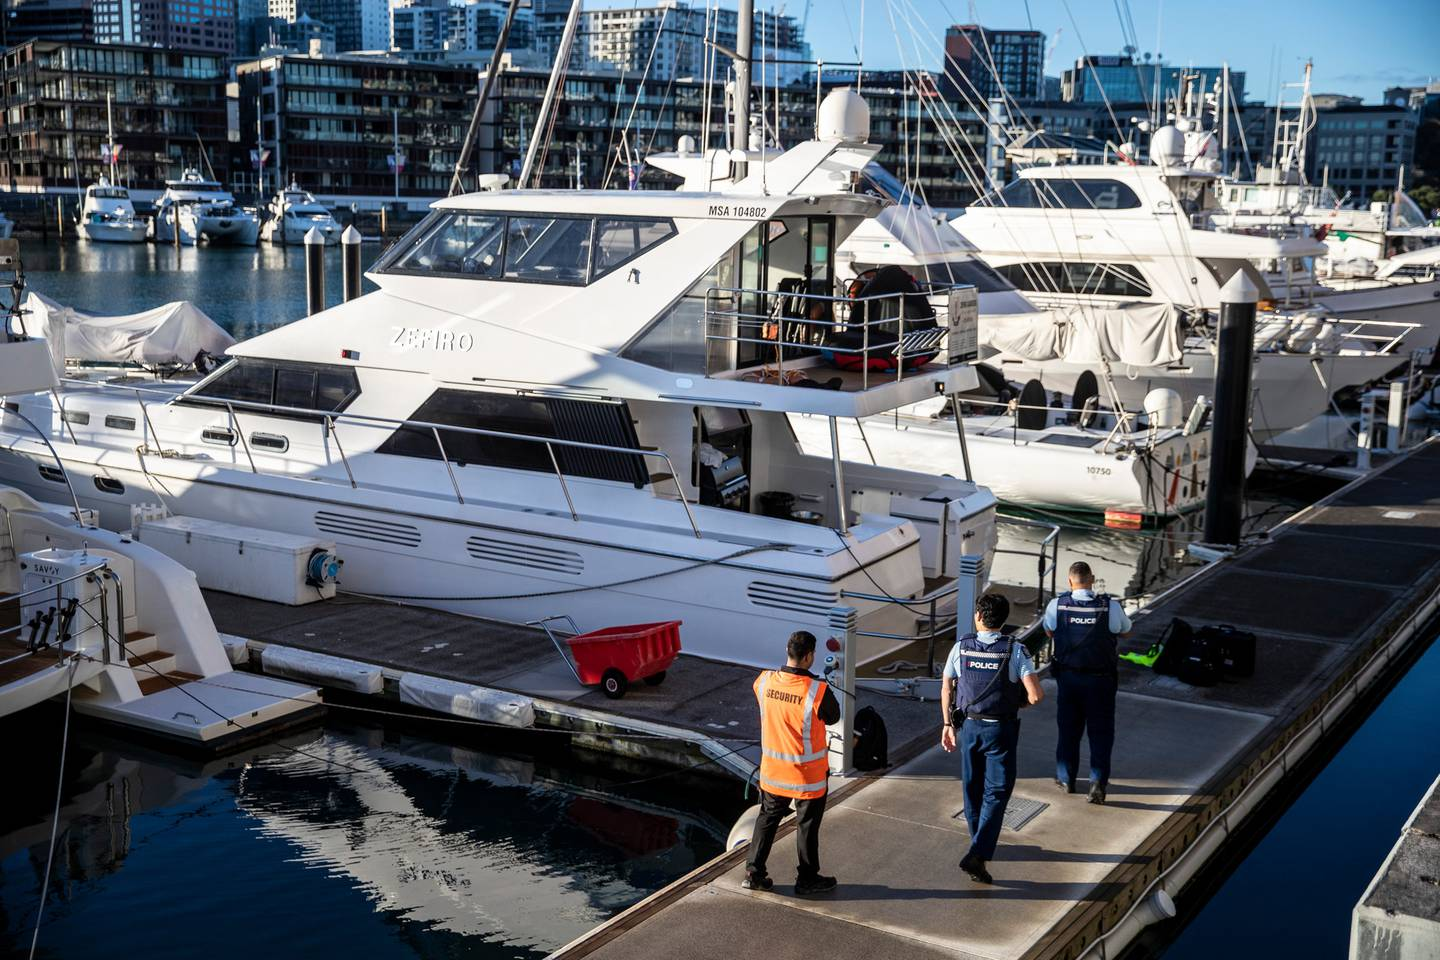 Police and maritime investigators at the Zefiro at Auckland's Viaduct Harbour this morning. Photo / Michael Craig